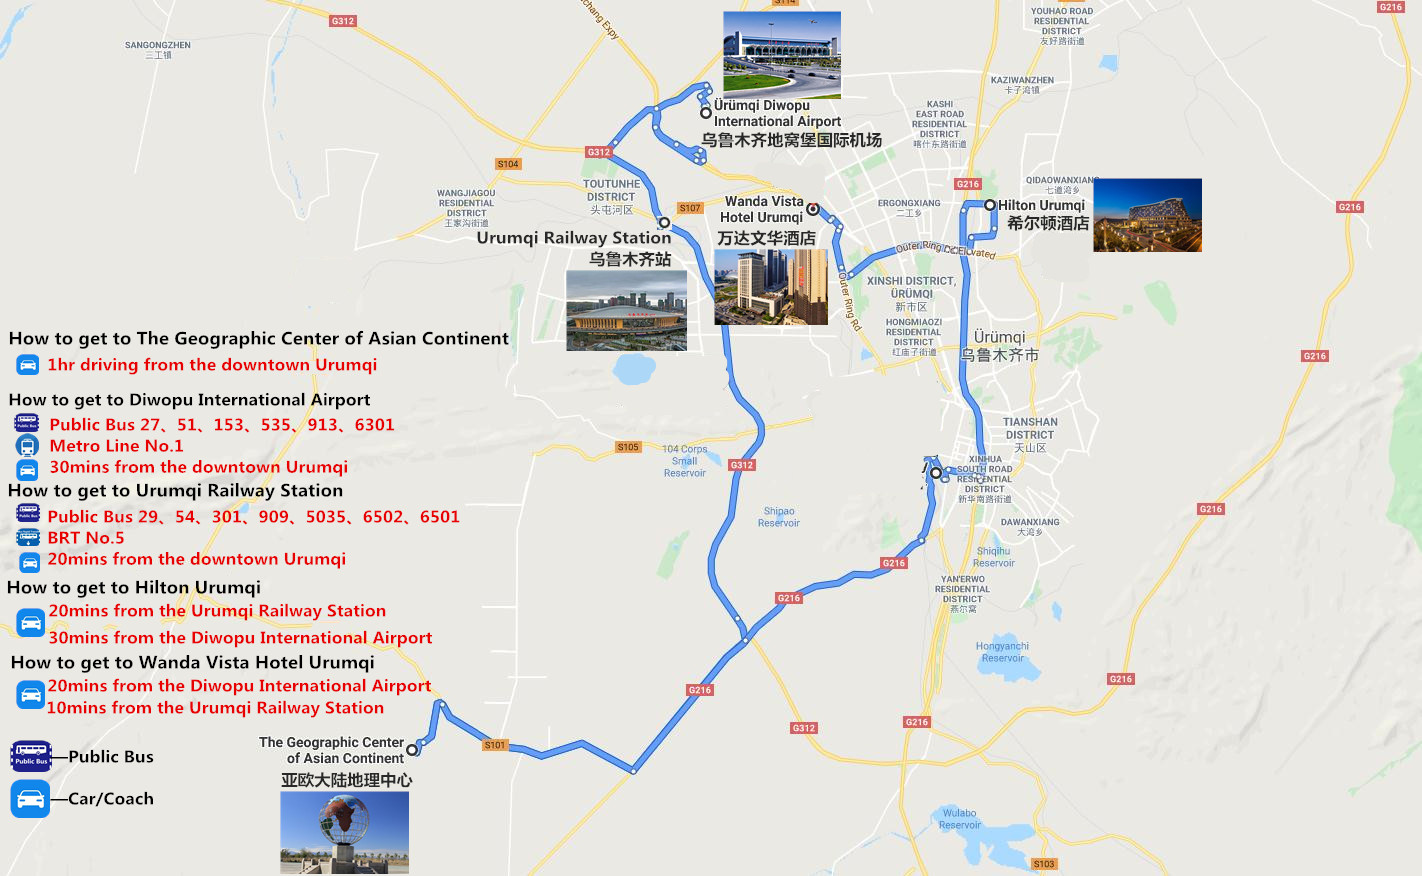 Urumqi Geographic Center of Asia Tour Travel Map